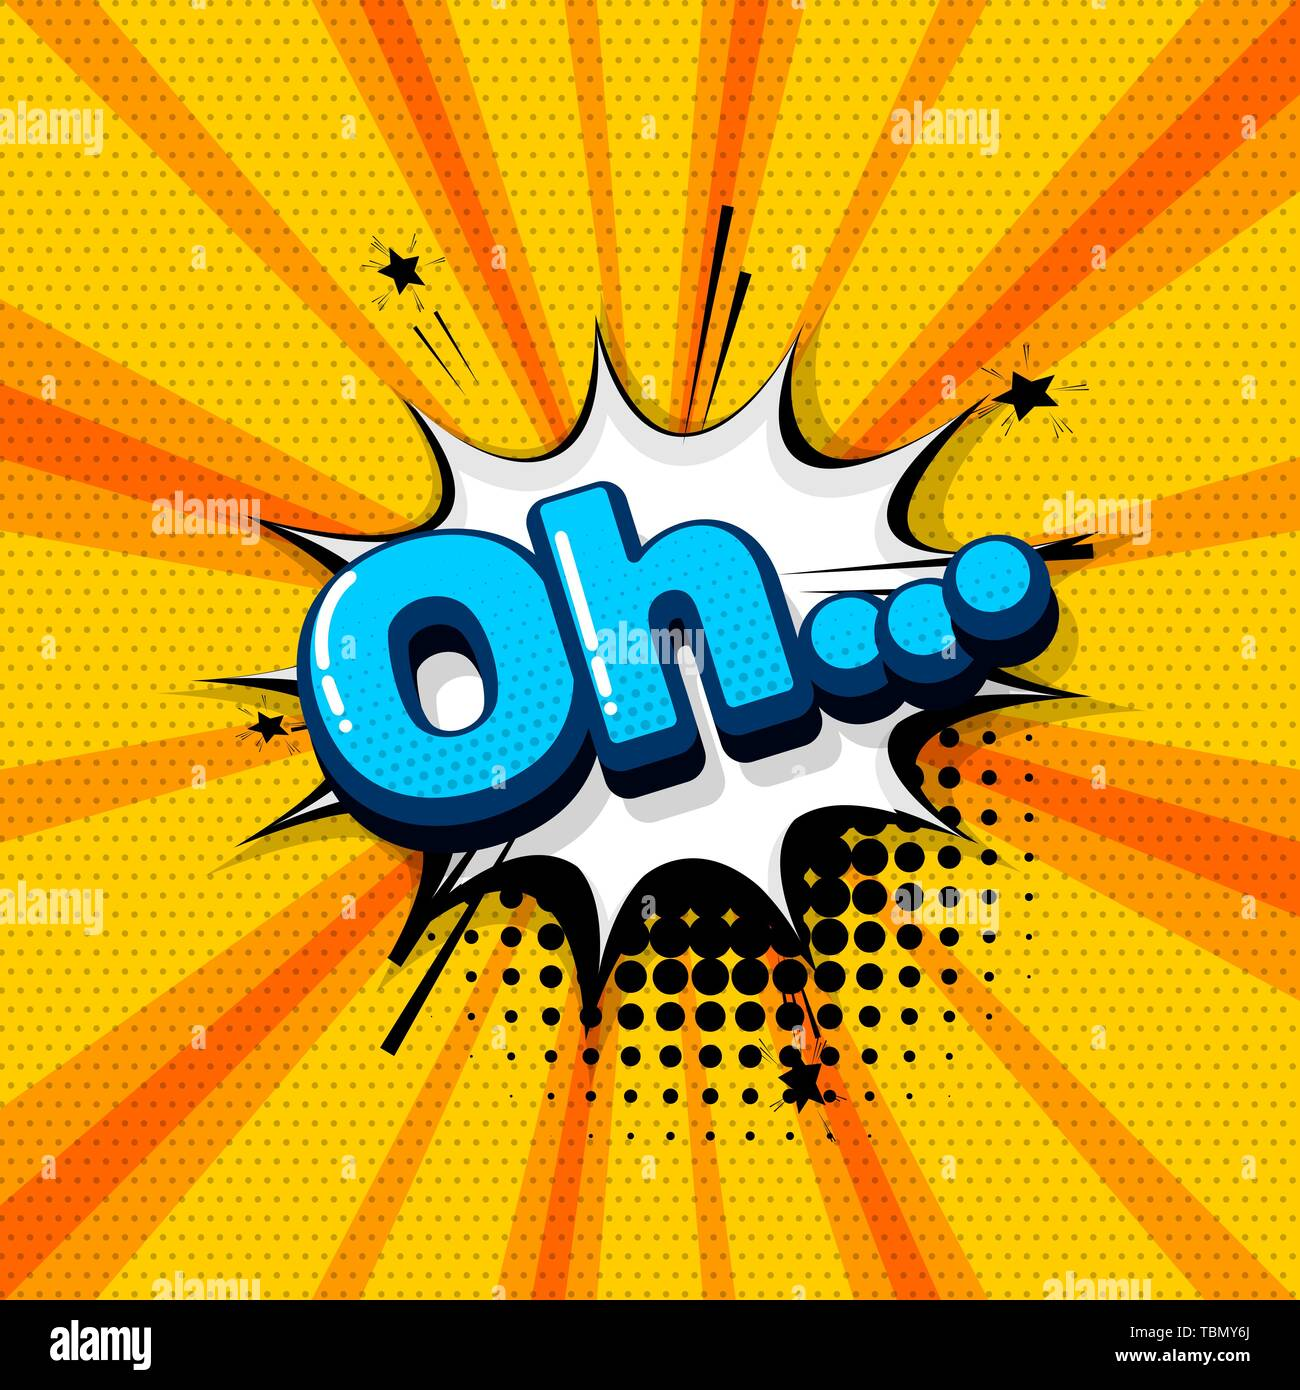 Oh comic text sound effects pop art style  Vector speech